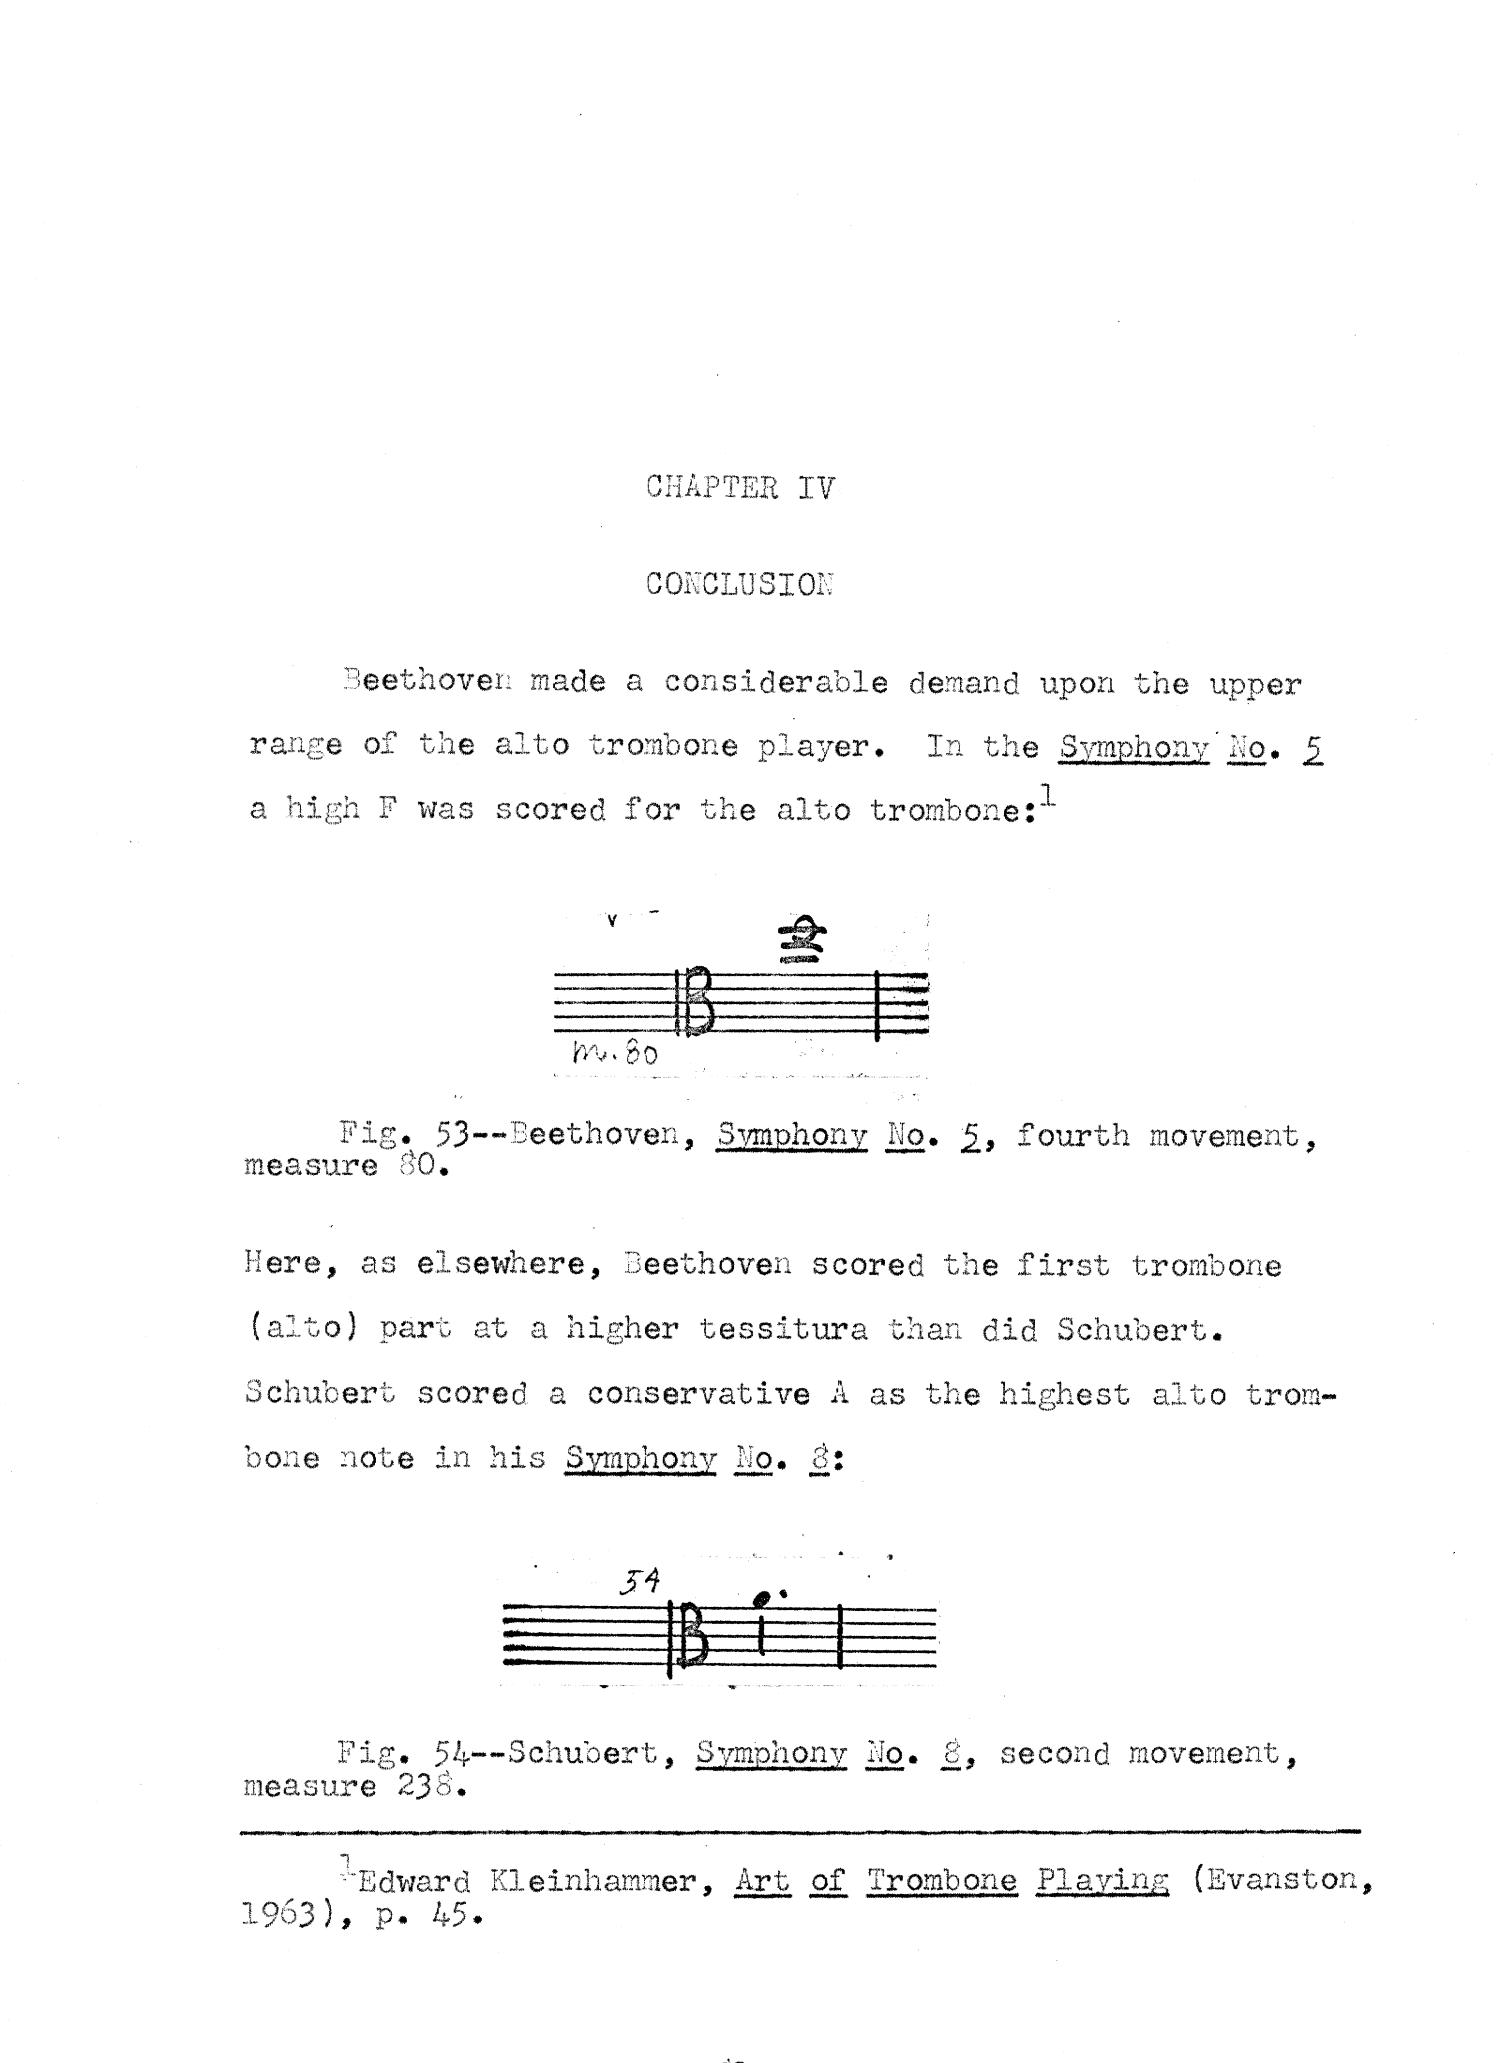 The Use of the Trombones in Beethoven's Symphonies Nos  5, 6, 9, and